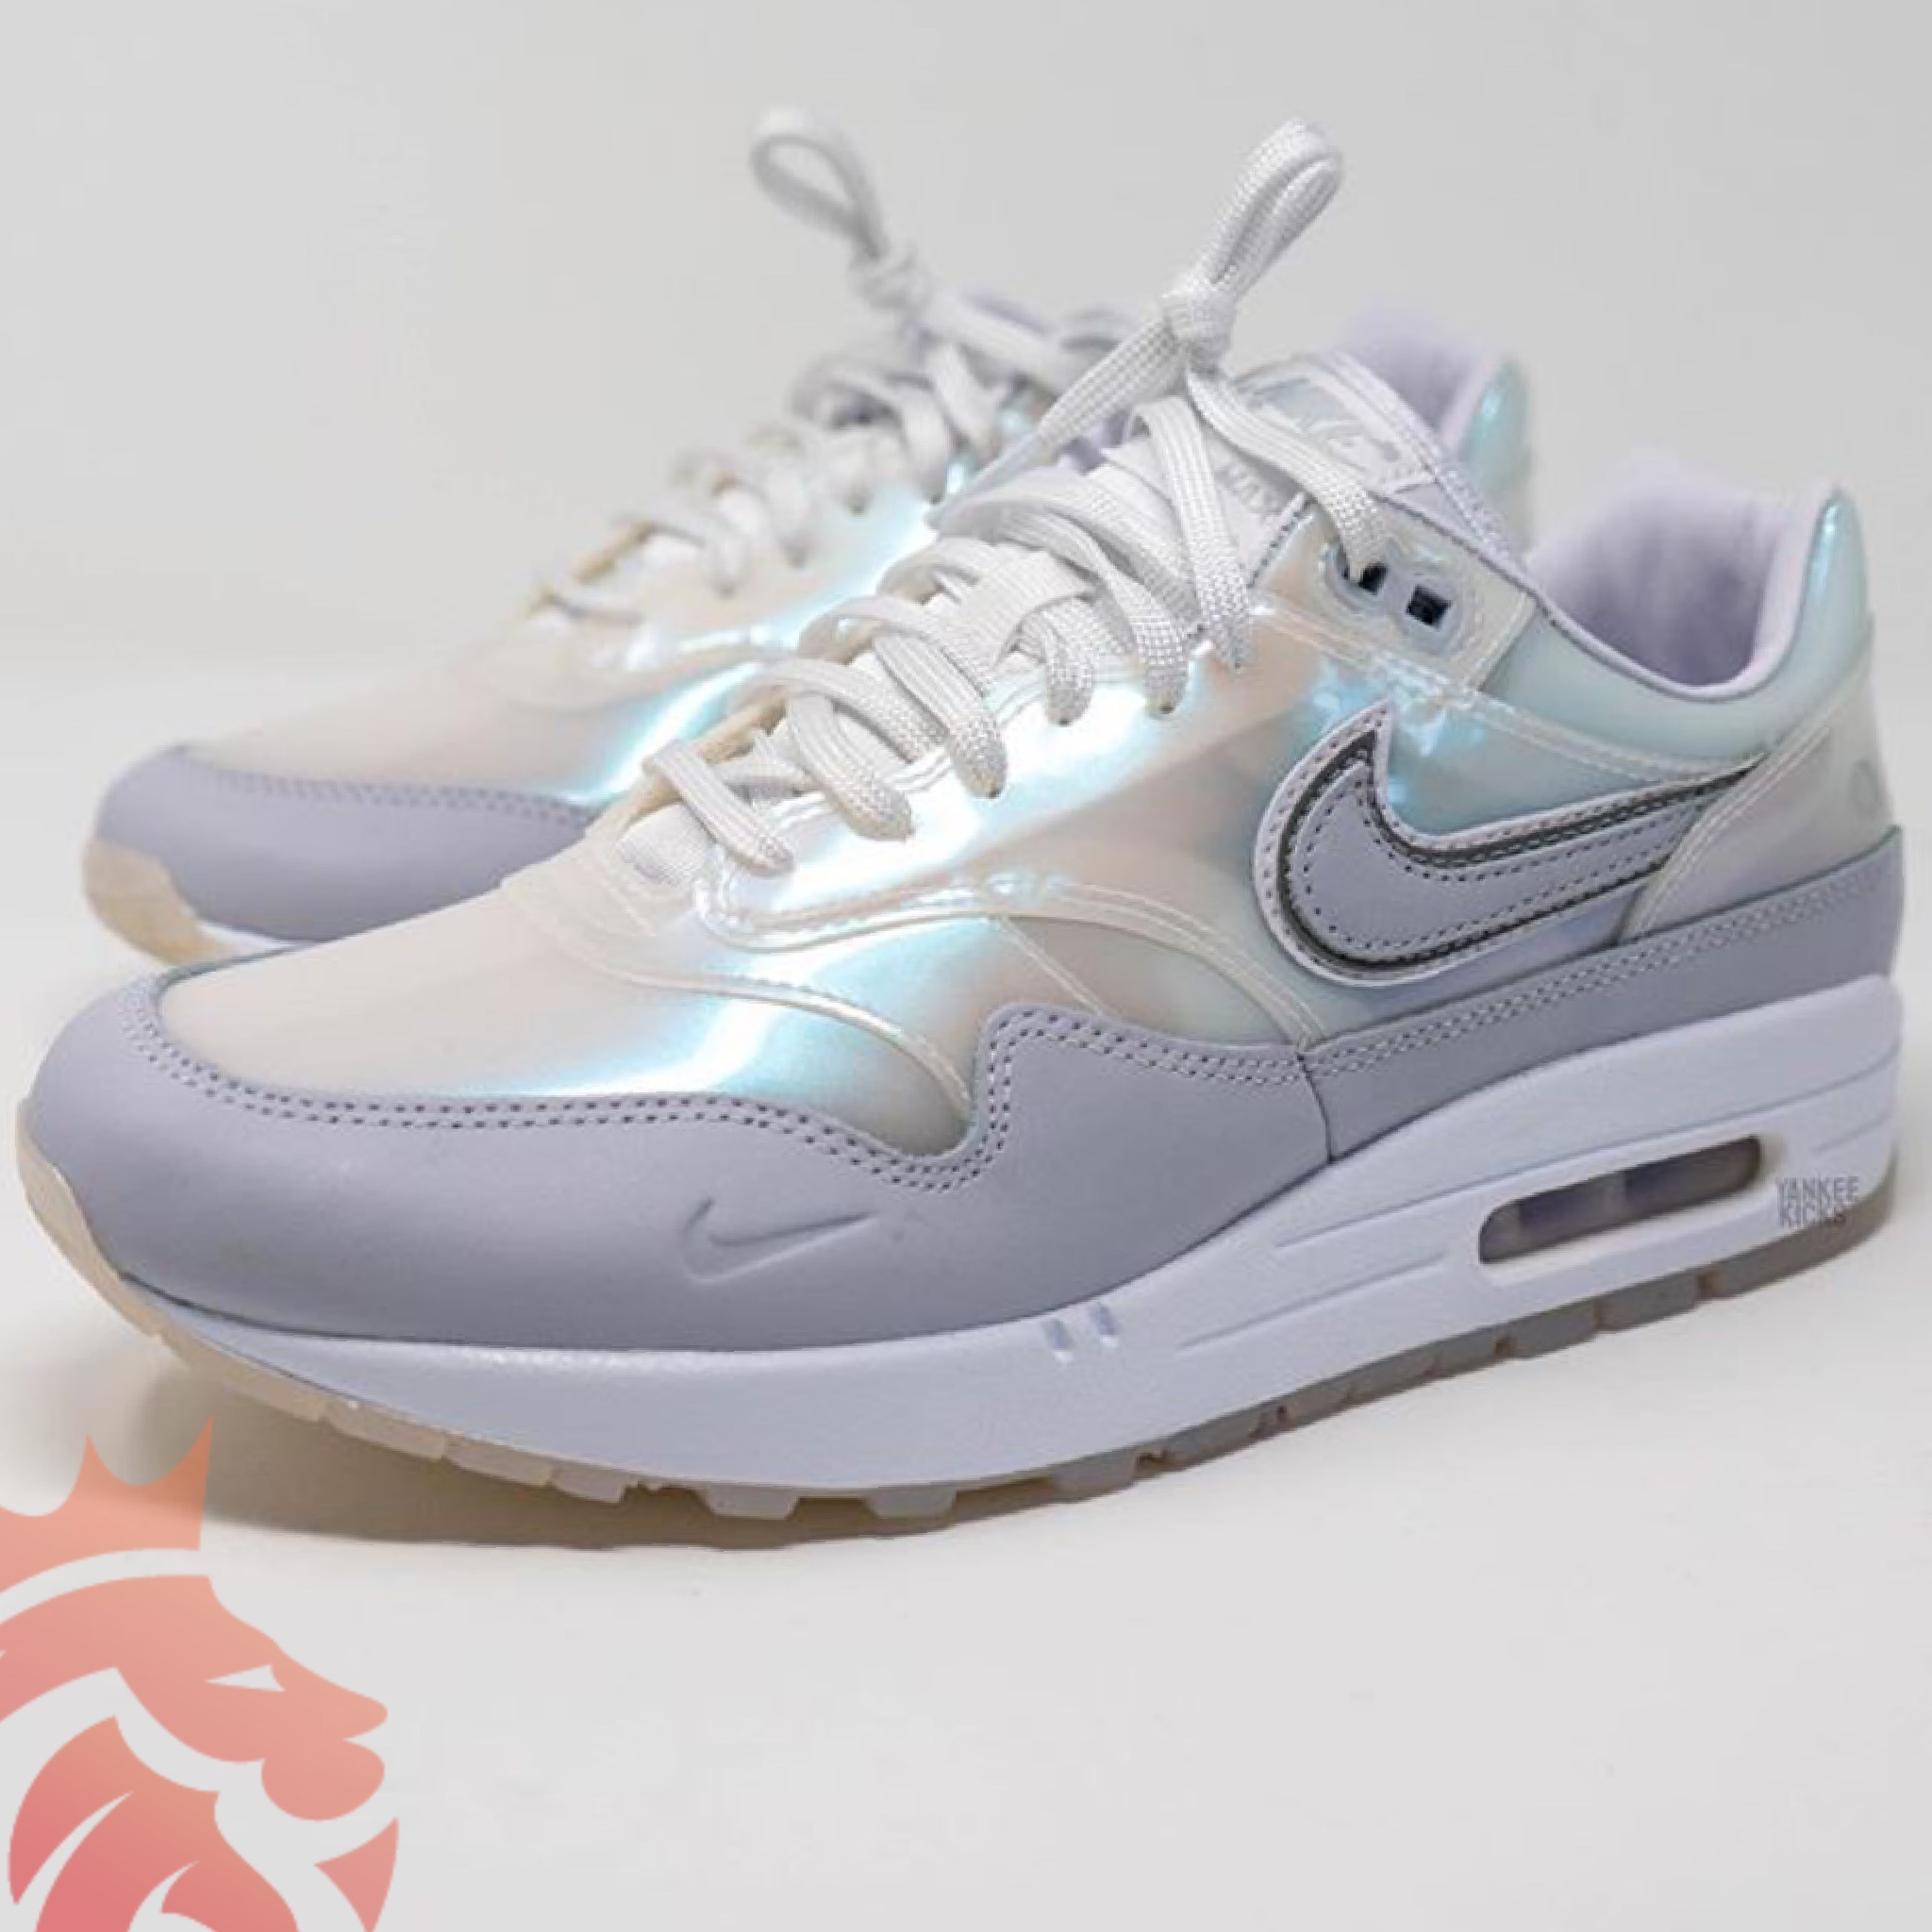 WMNS Nike Air Max 1 SNKRS Day DA4300-100 White/Clear-Grey